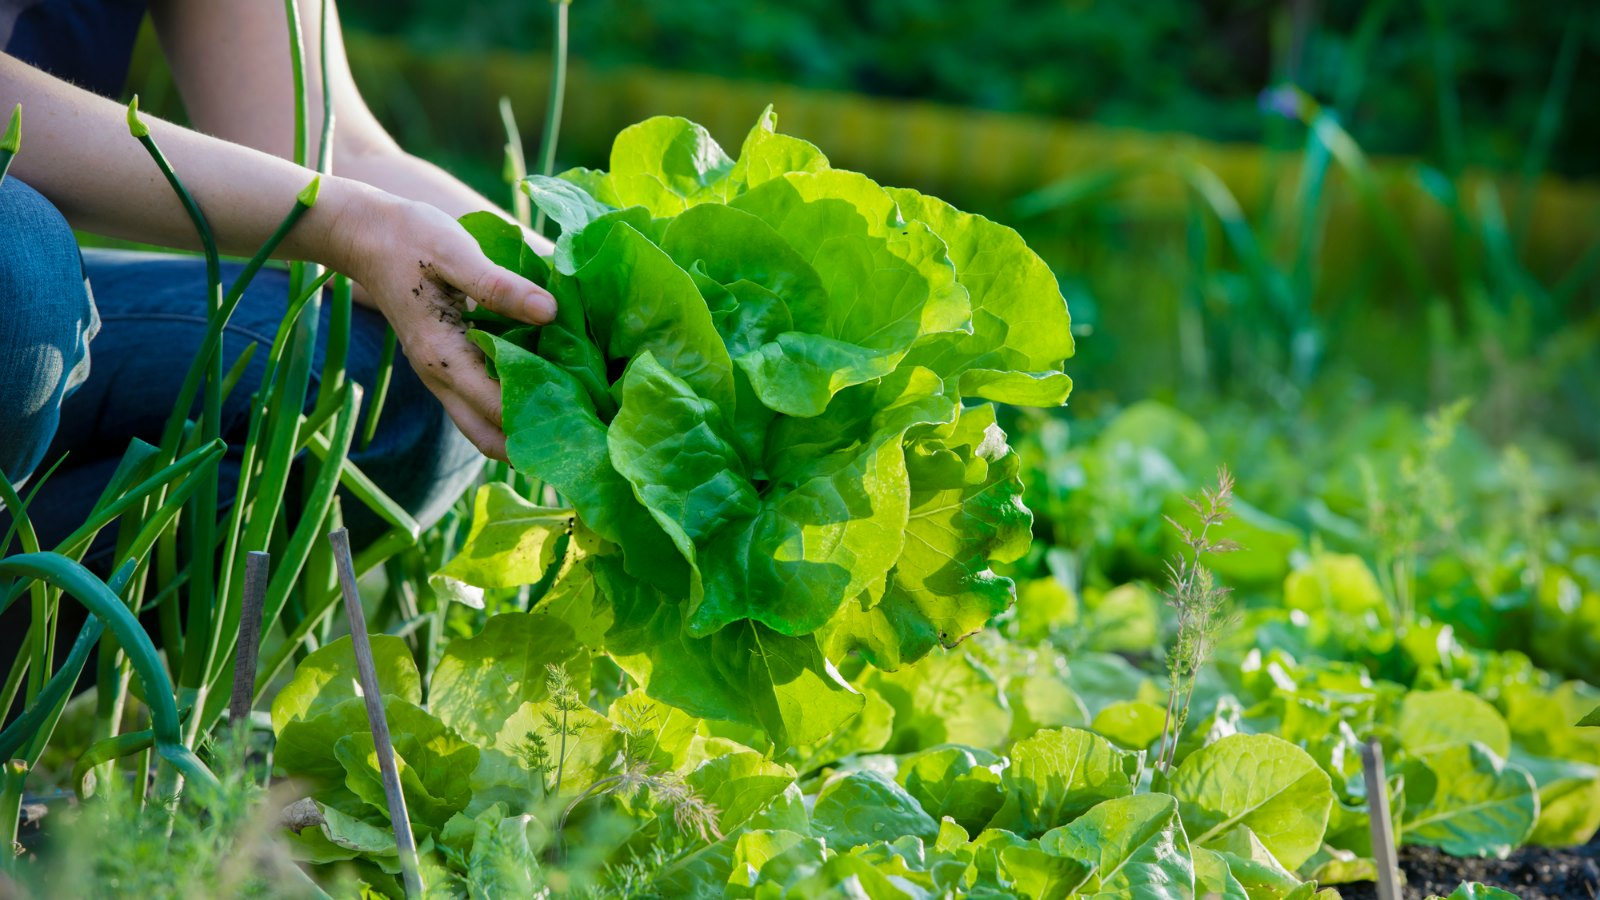 Find out what veggies to plant now for amazing results!